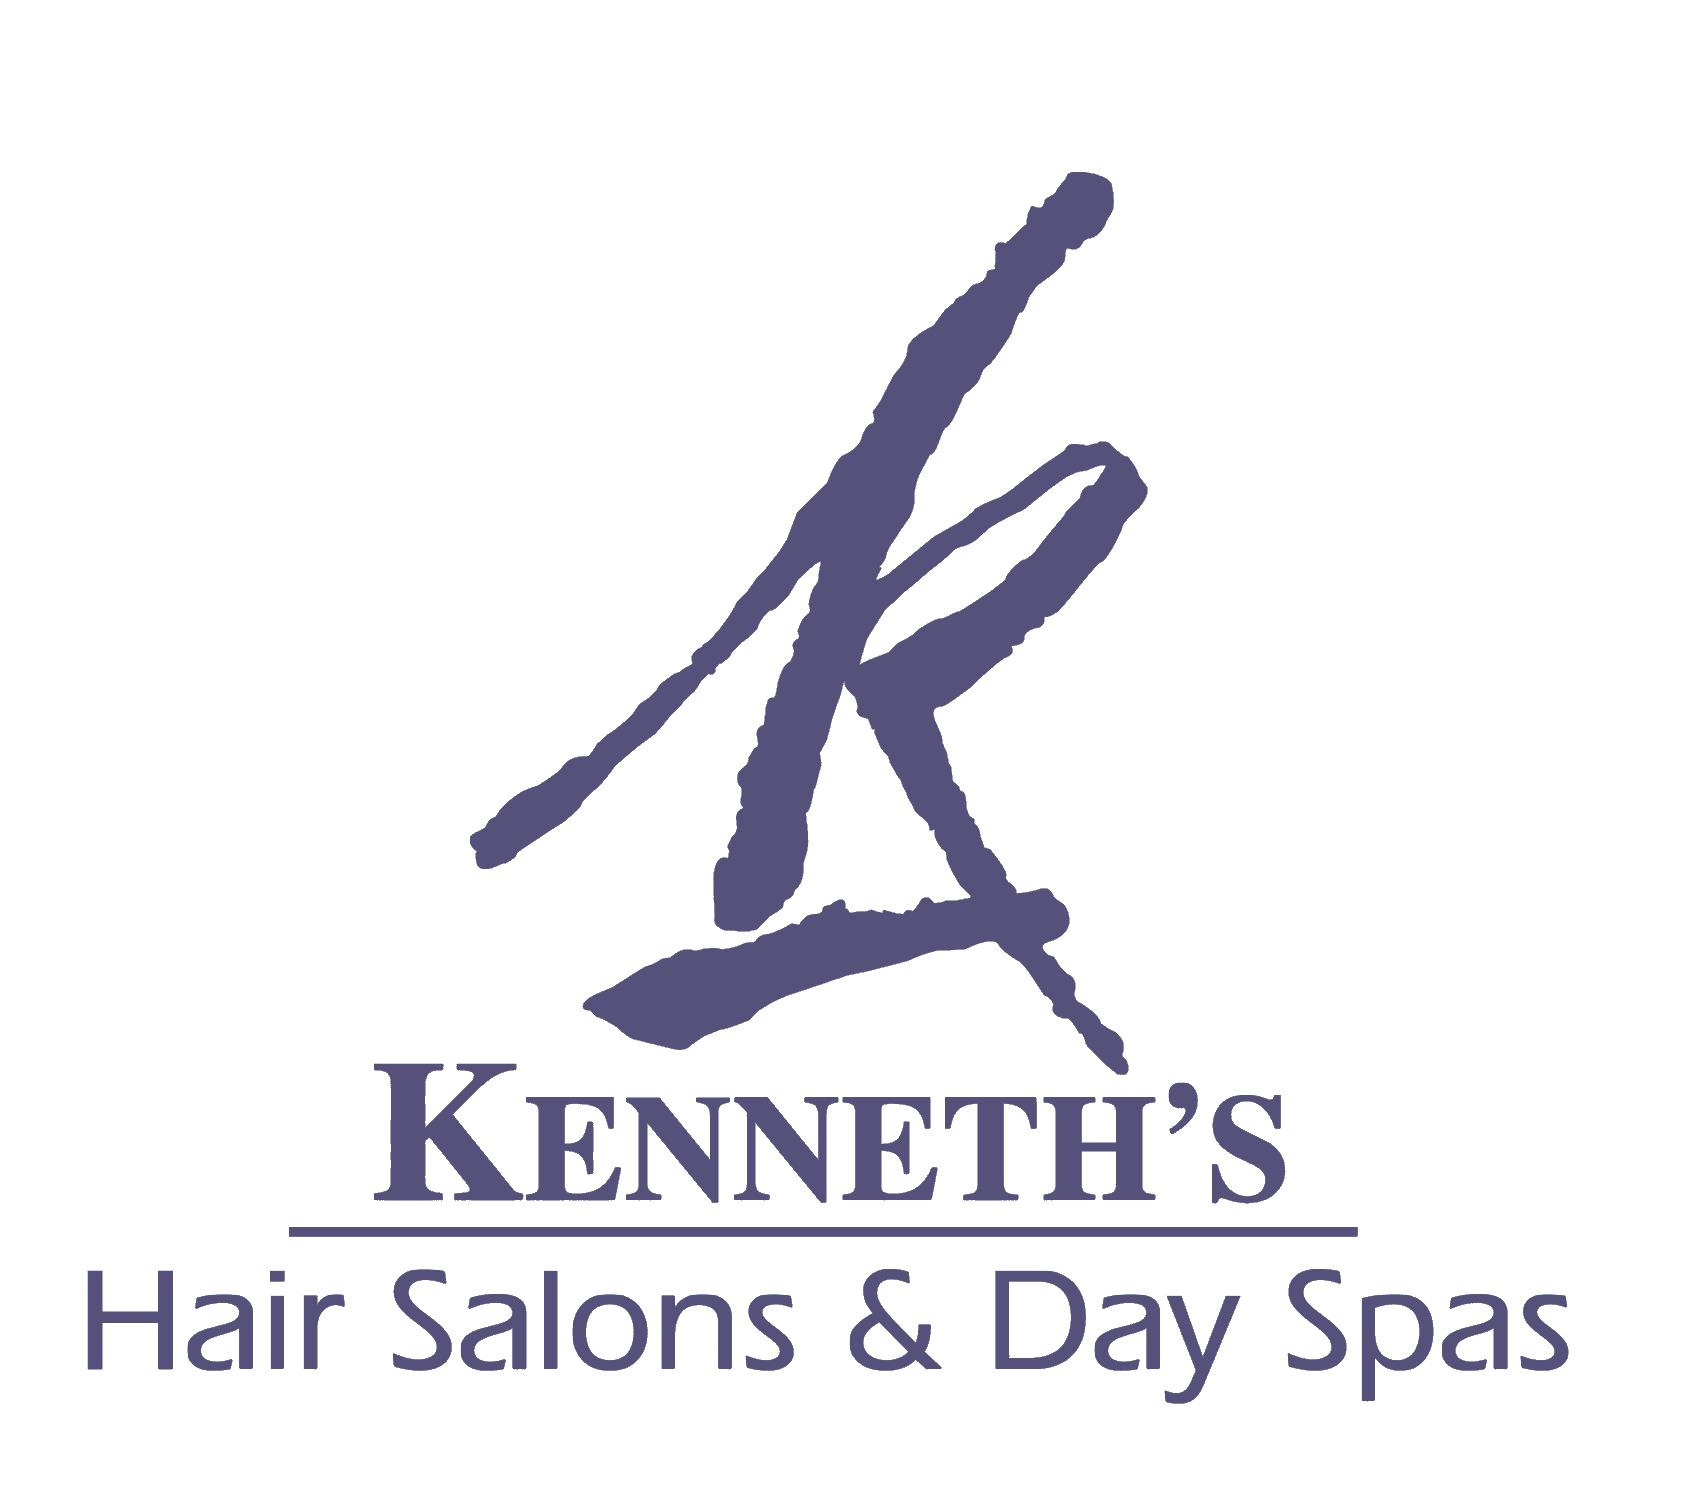 kenneths logo